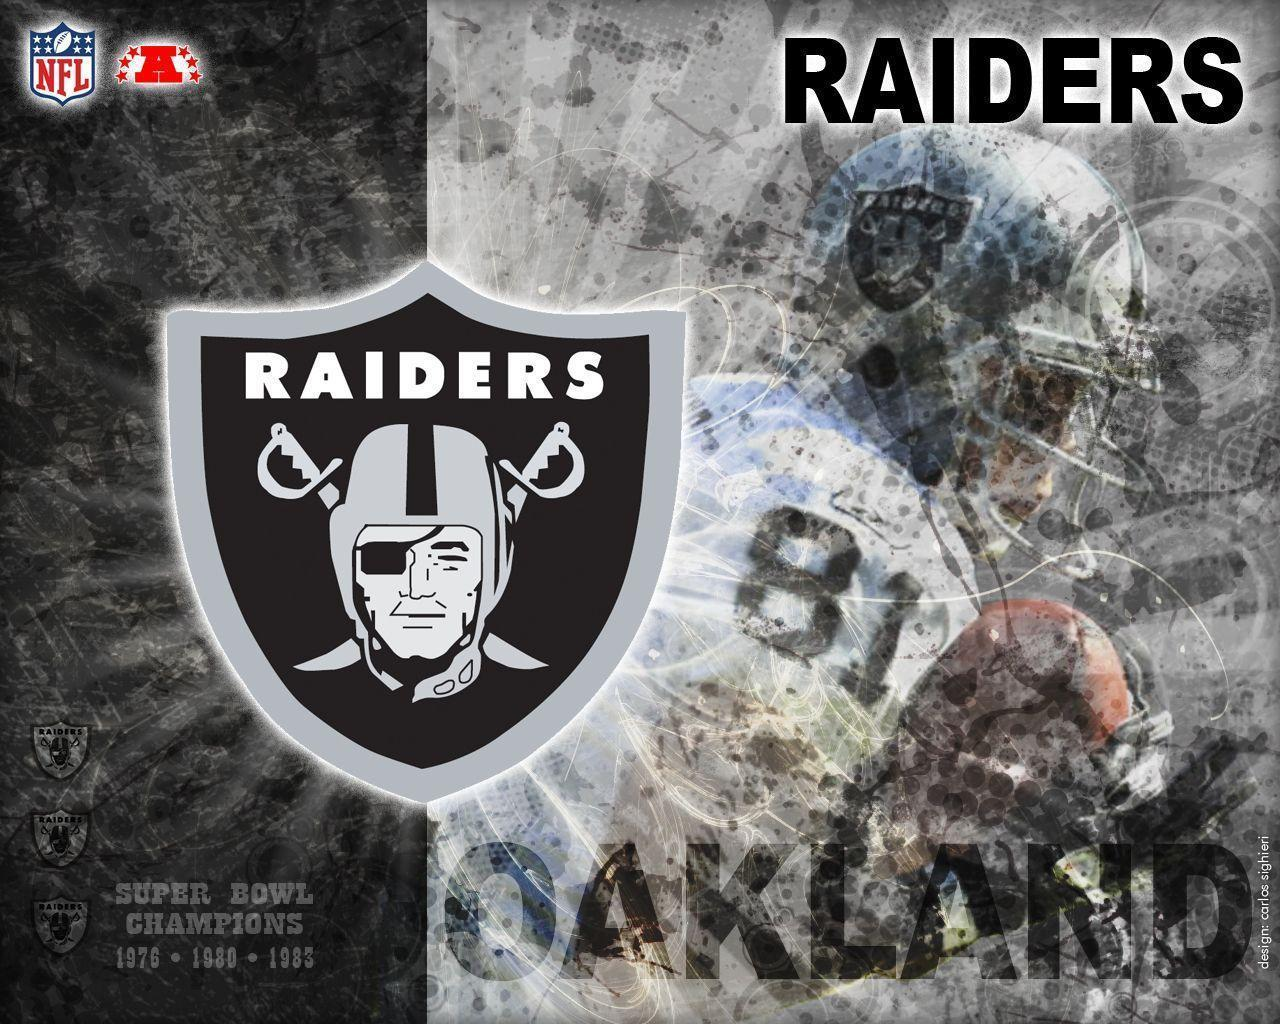 oakland raiders photo oakland raiders wallpaper high resolution images